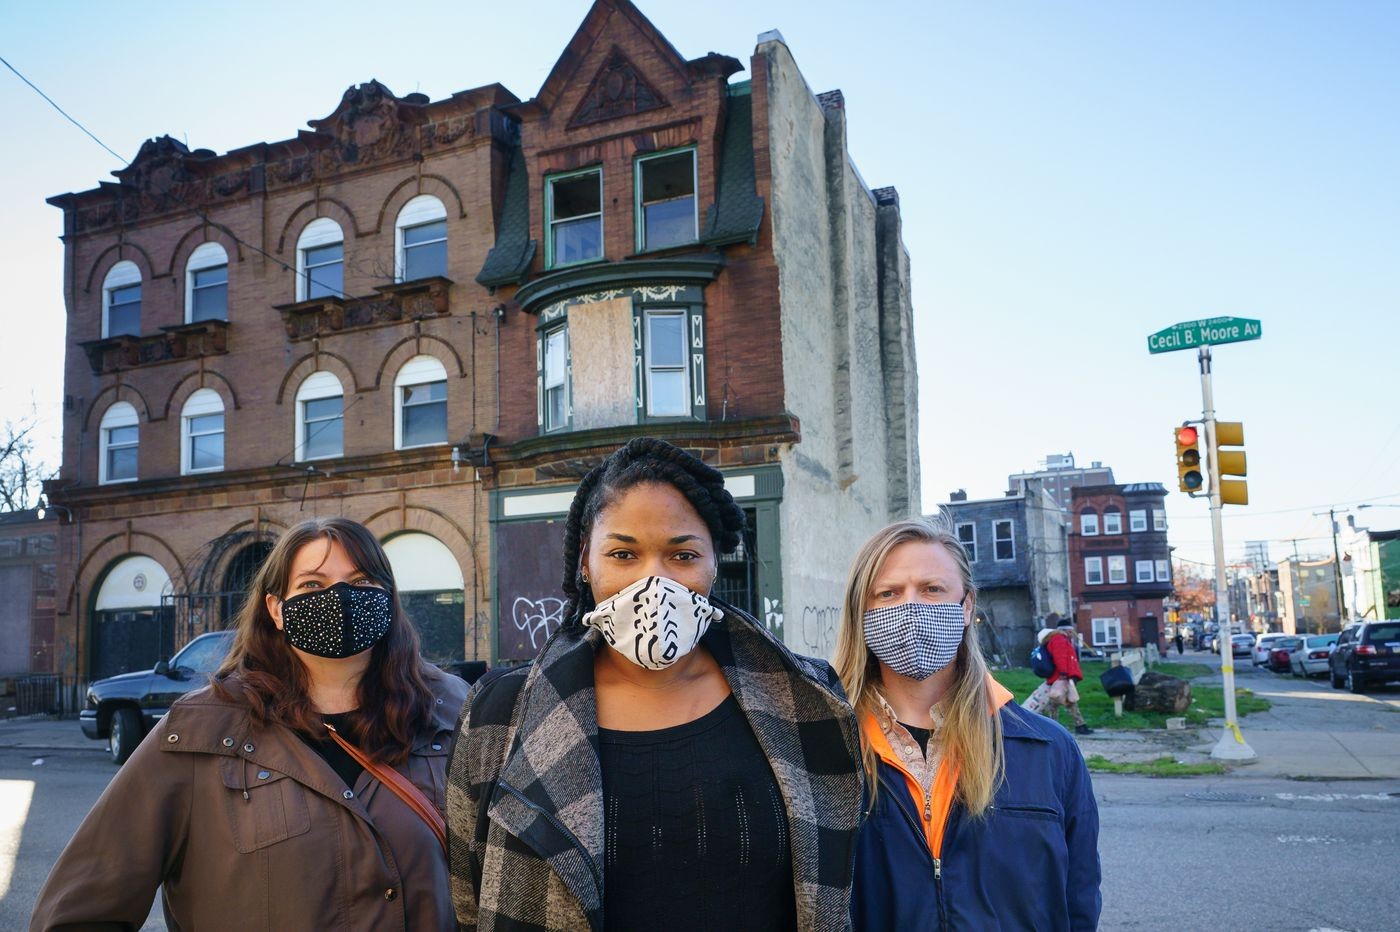 Philly's Dox Thrash house will get a second life with preservationists acting as investor-partners